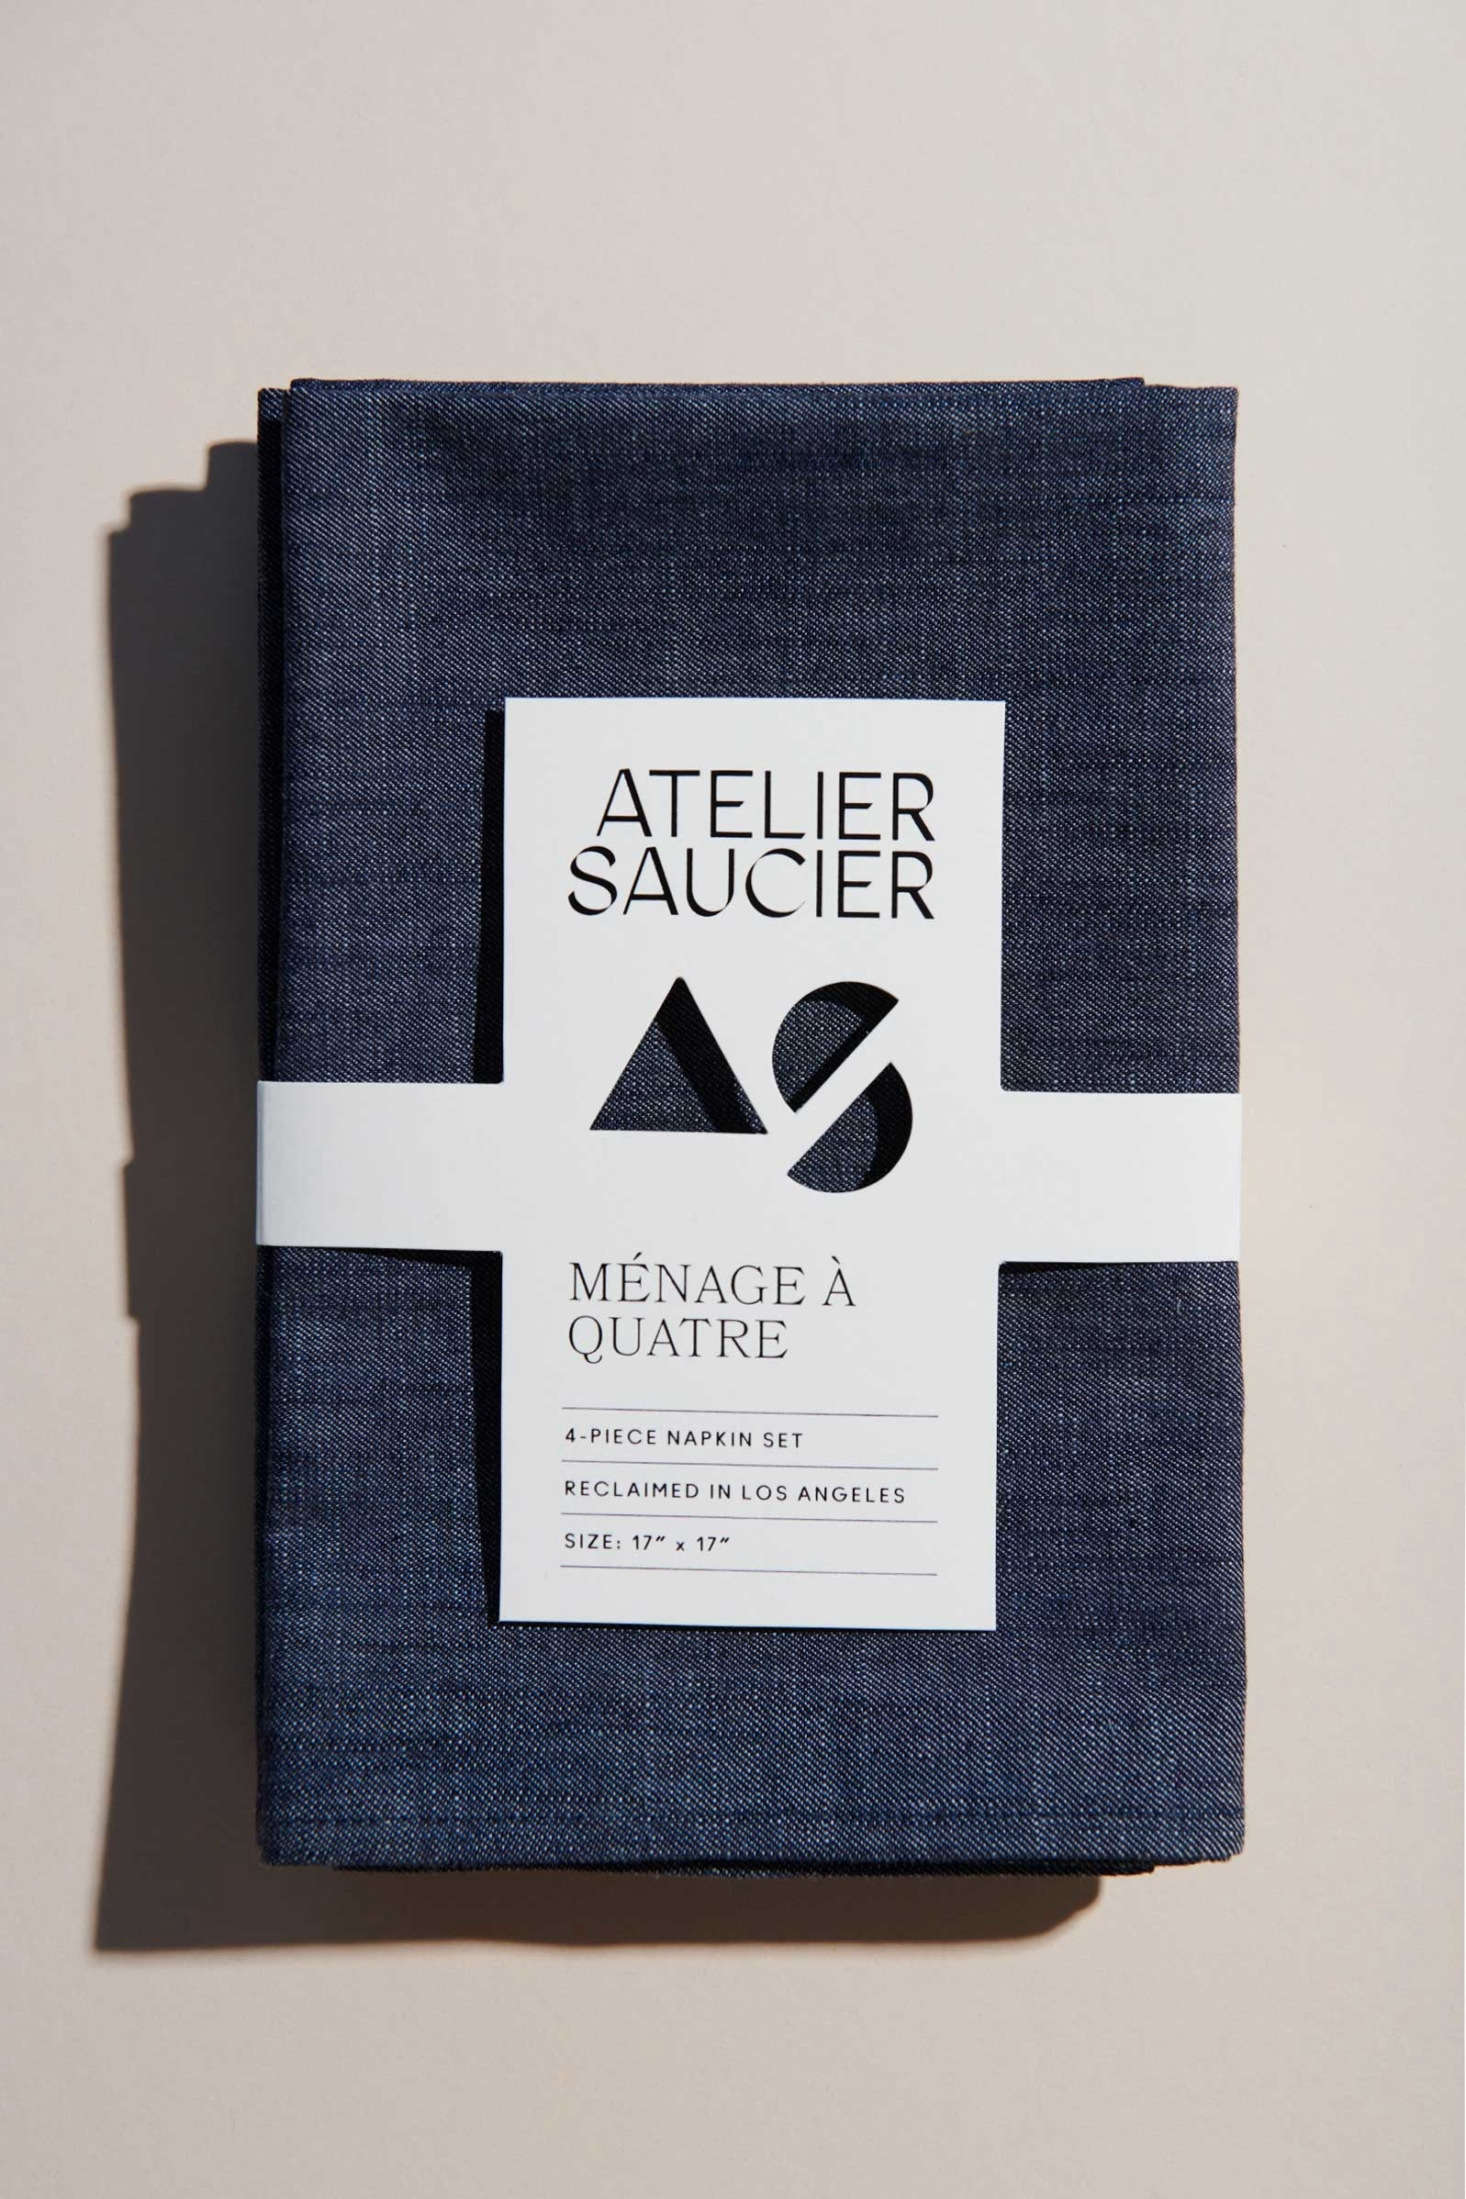 Atelier Saucier of Los Angeles turns surplus fabrics into napkins, placemats, and tea towels stitched in Downtown LA. Its Dark Denim Set, four for $66, is one of several that put reclaimed denim to good use.